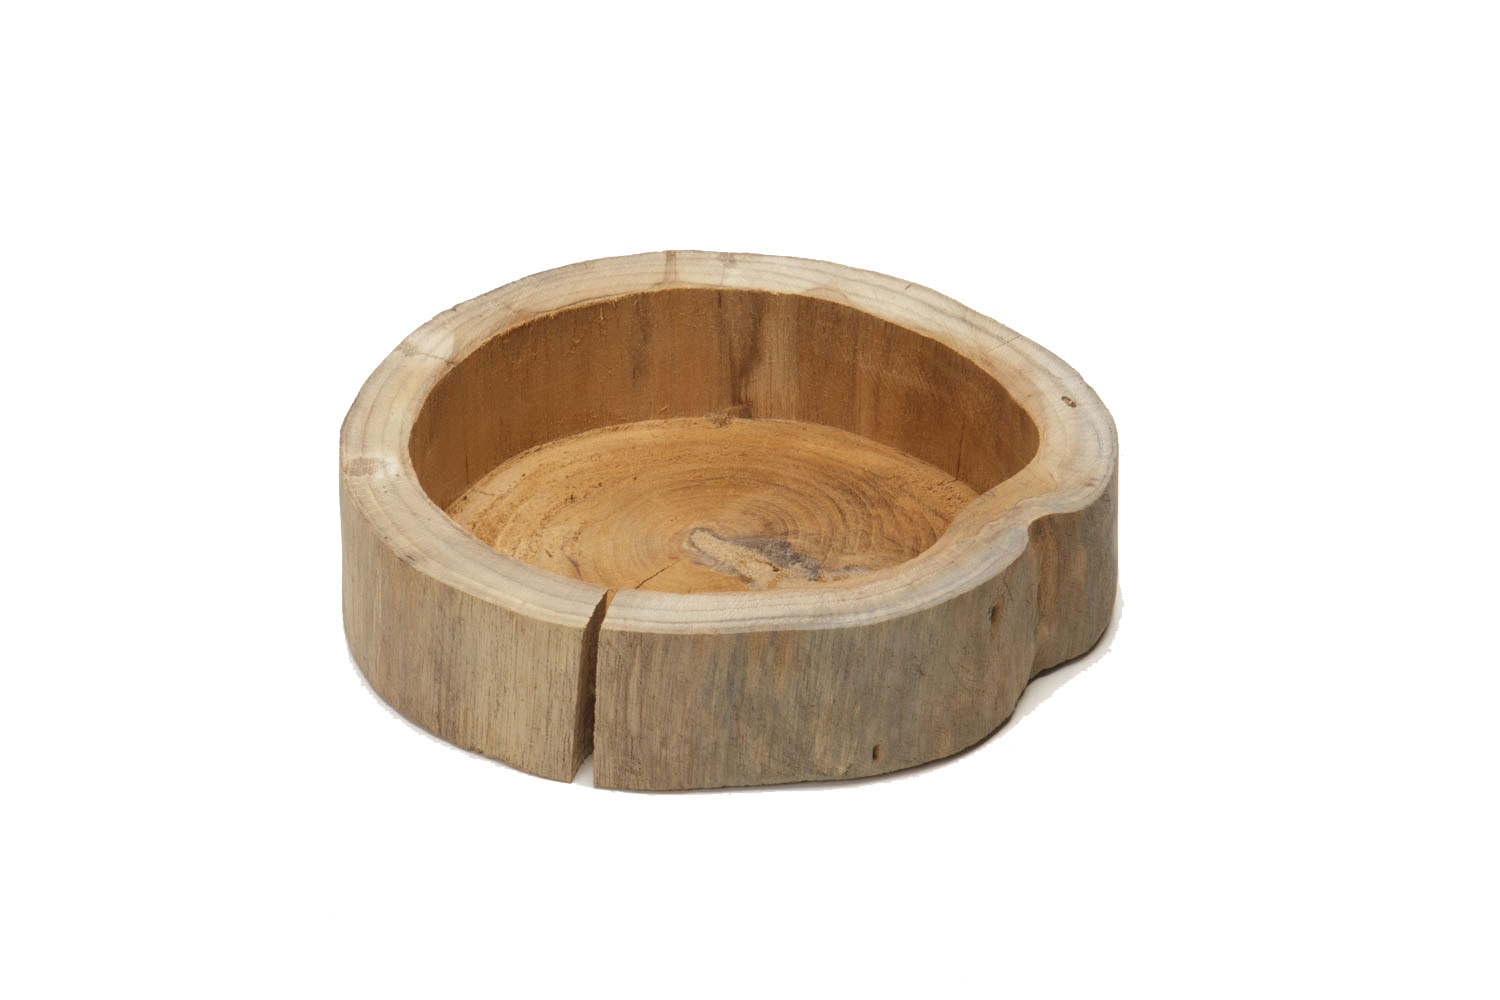 Low Wood Bowl 5-